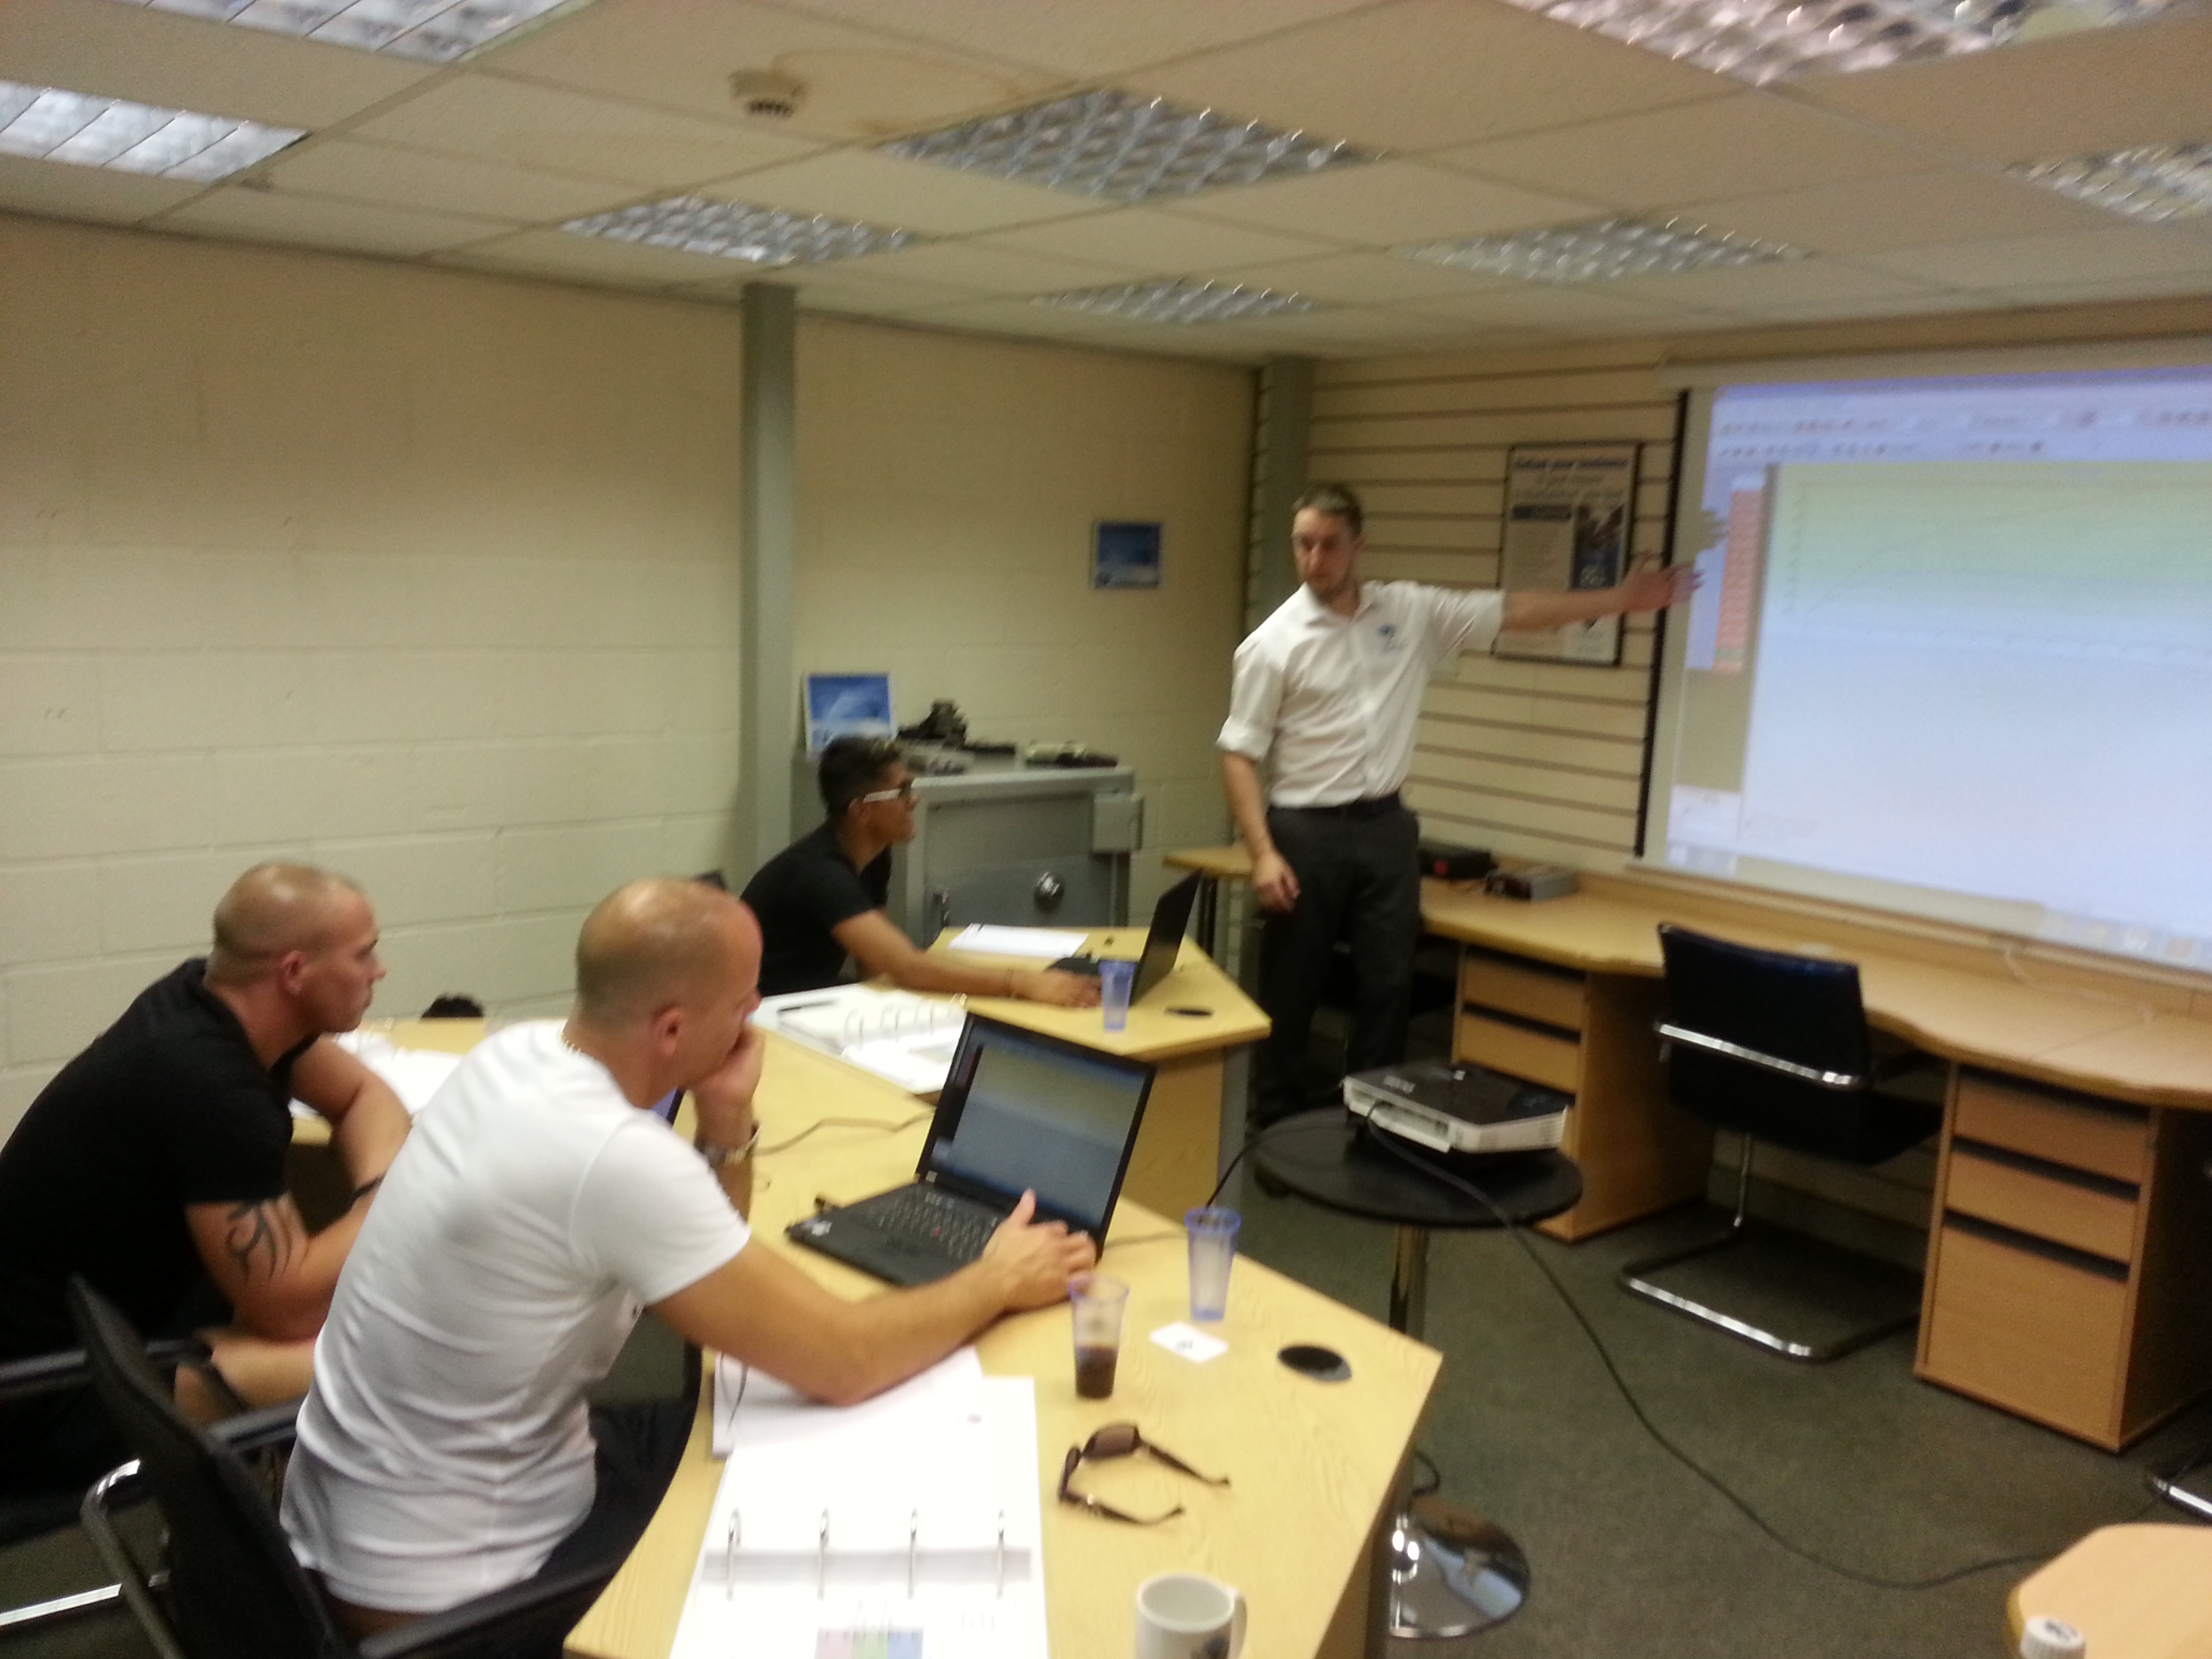 ecu remapping training with royal recognition viezu. Black Bedroom Furniture Sets. Home Design Ideas